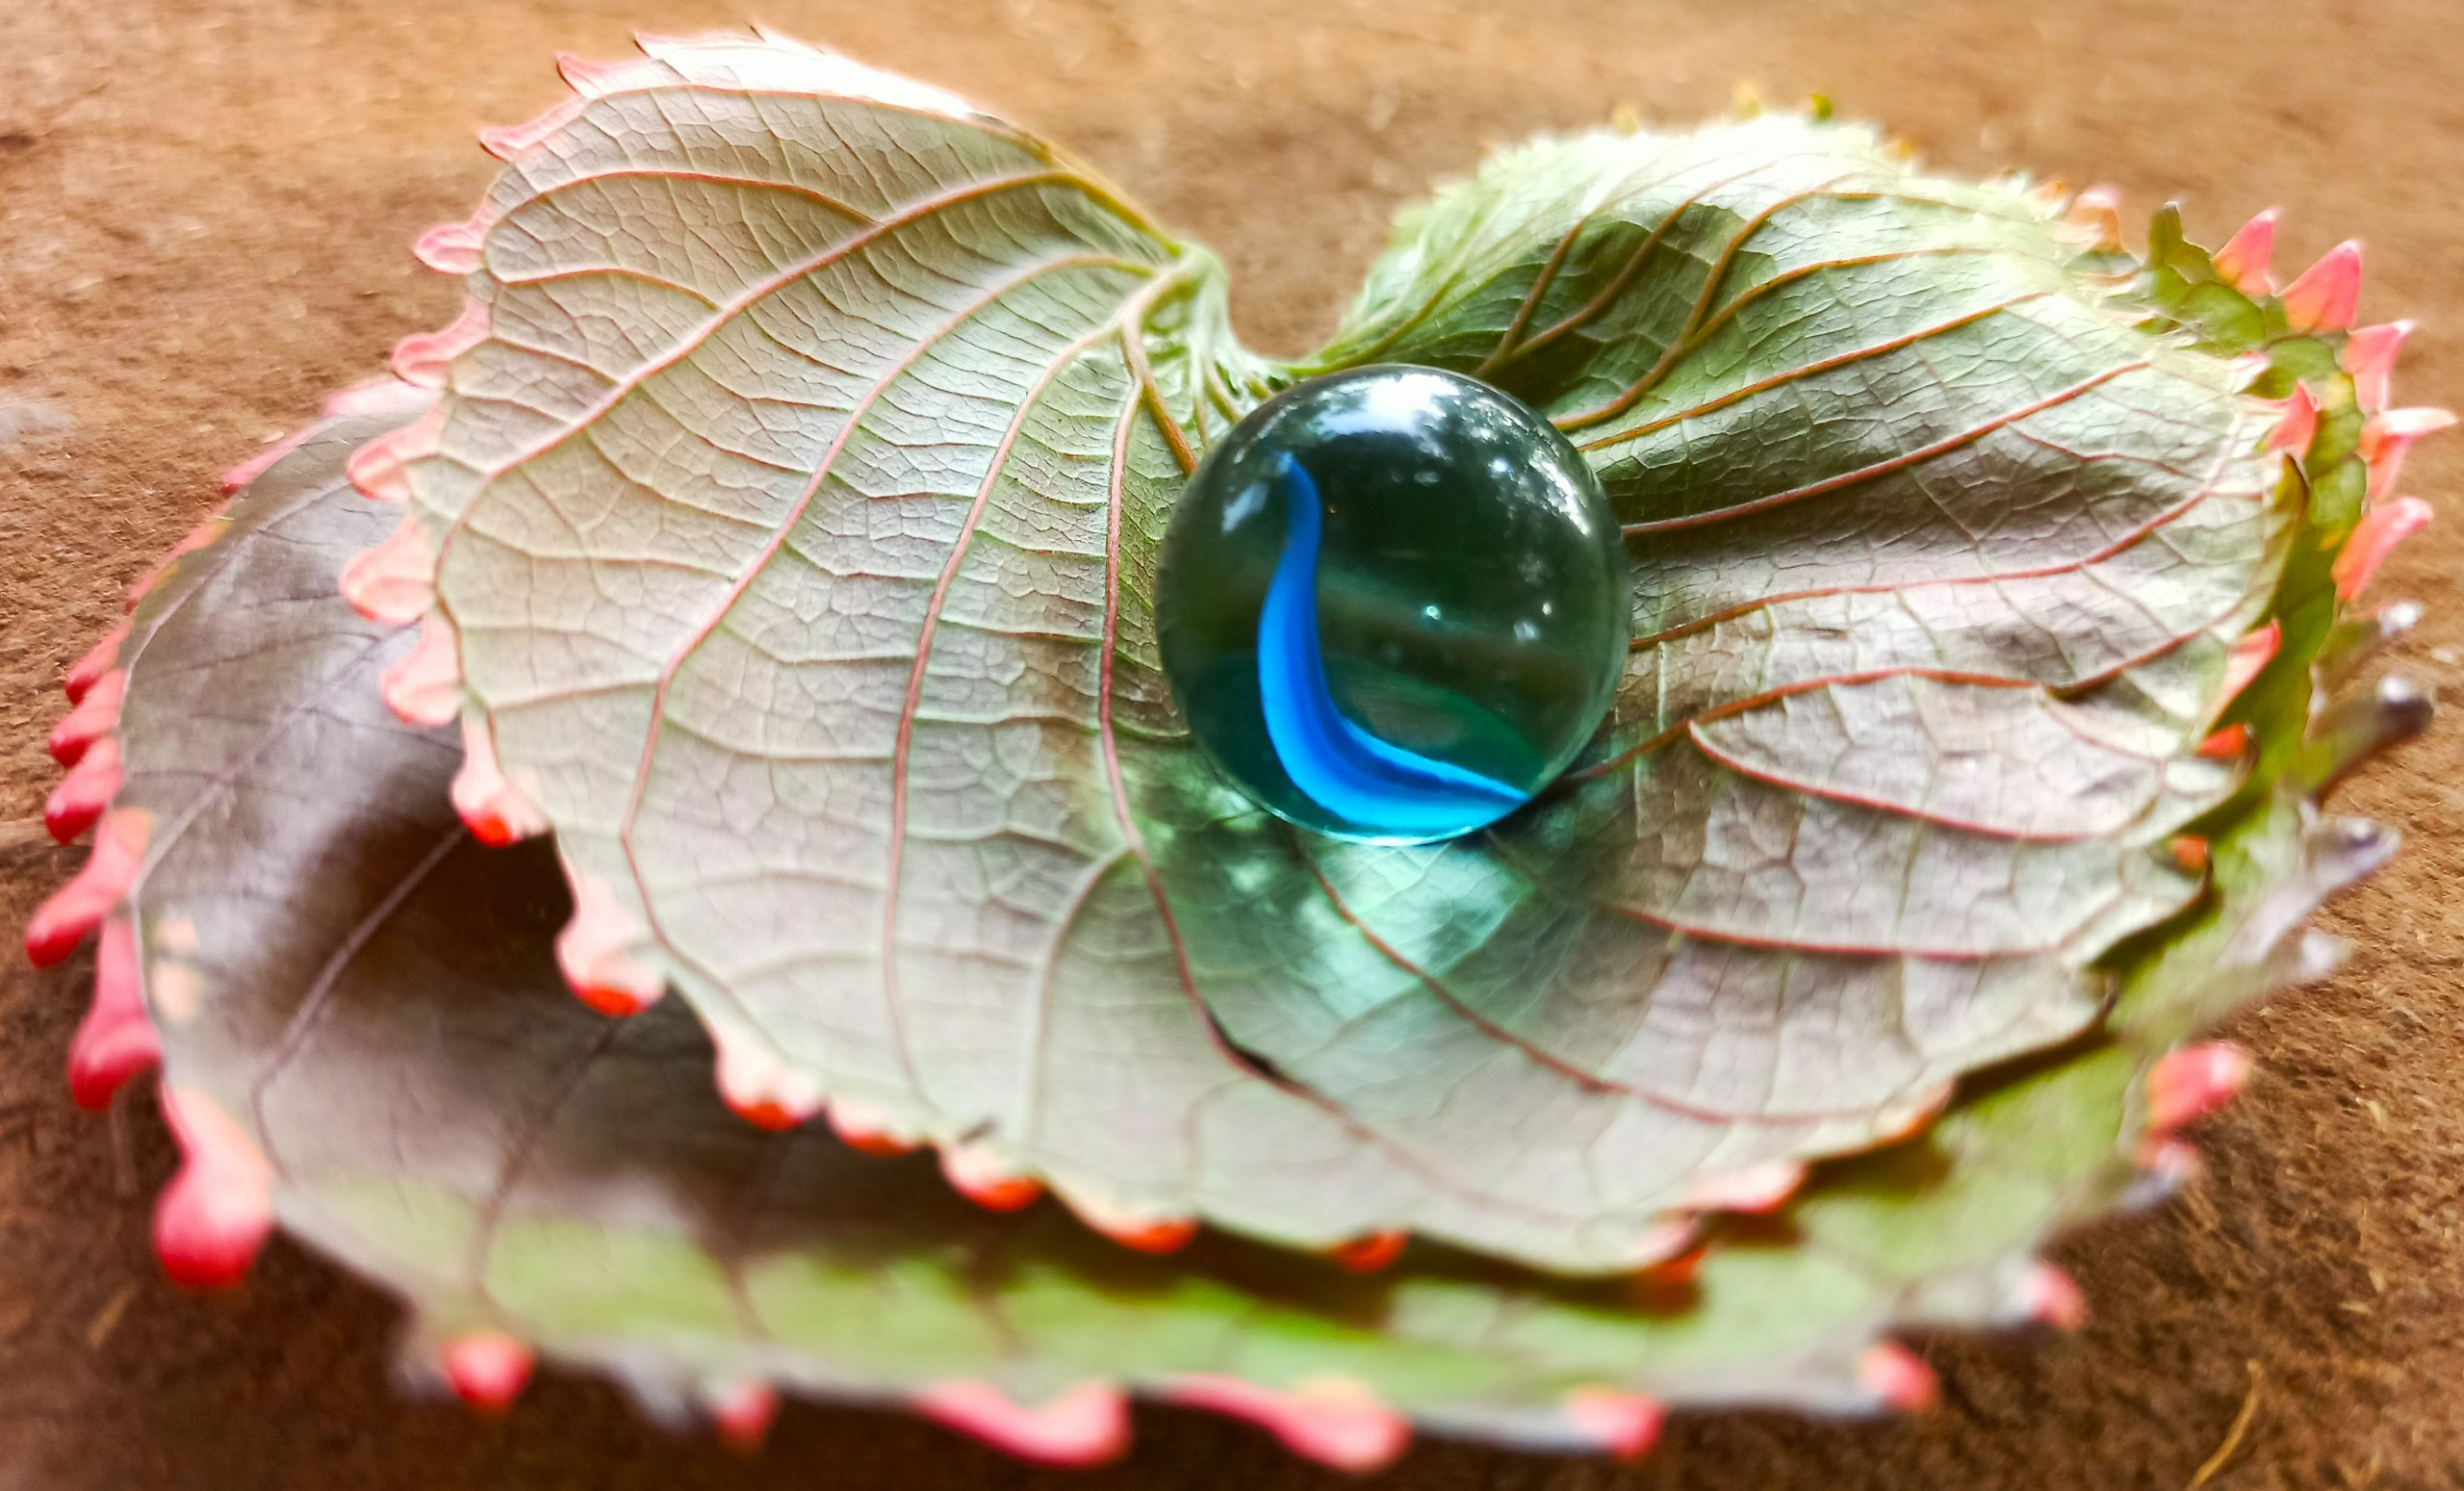 A crystal ball on leaves